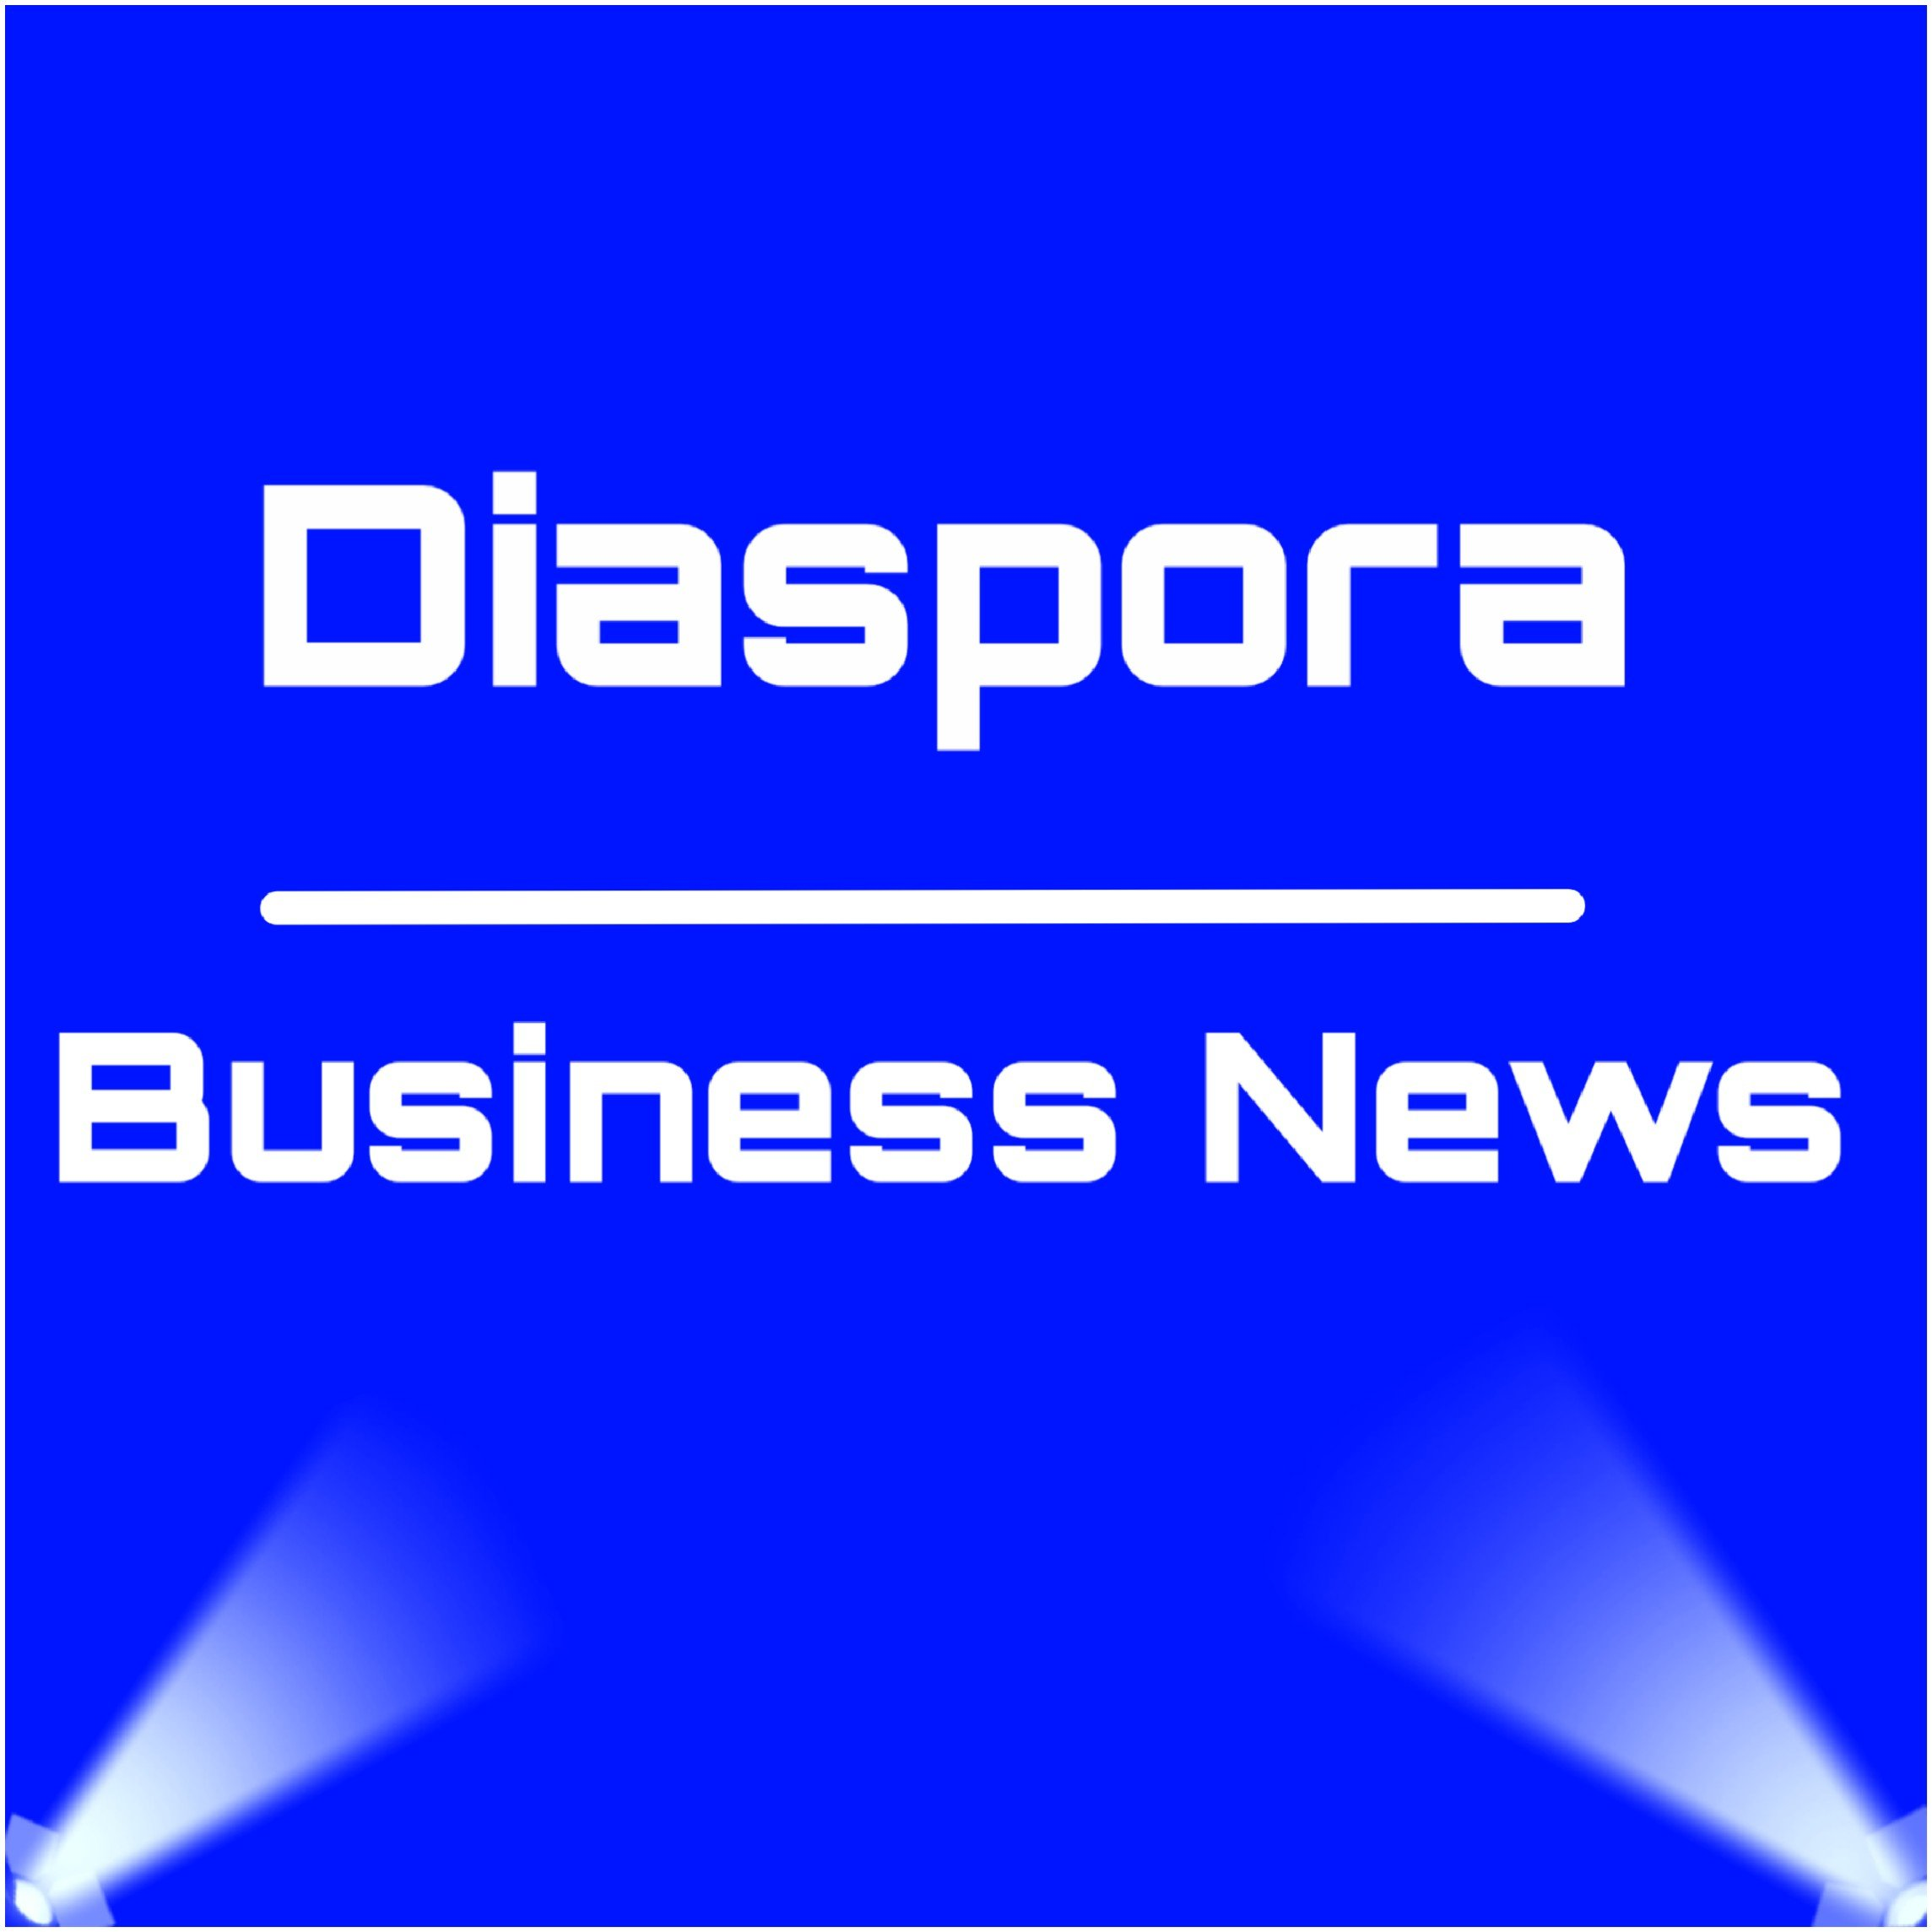 Diaspora Business News